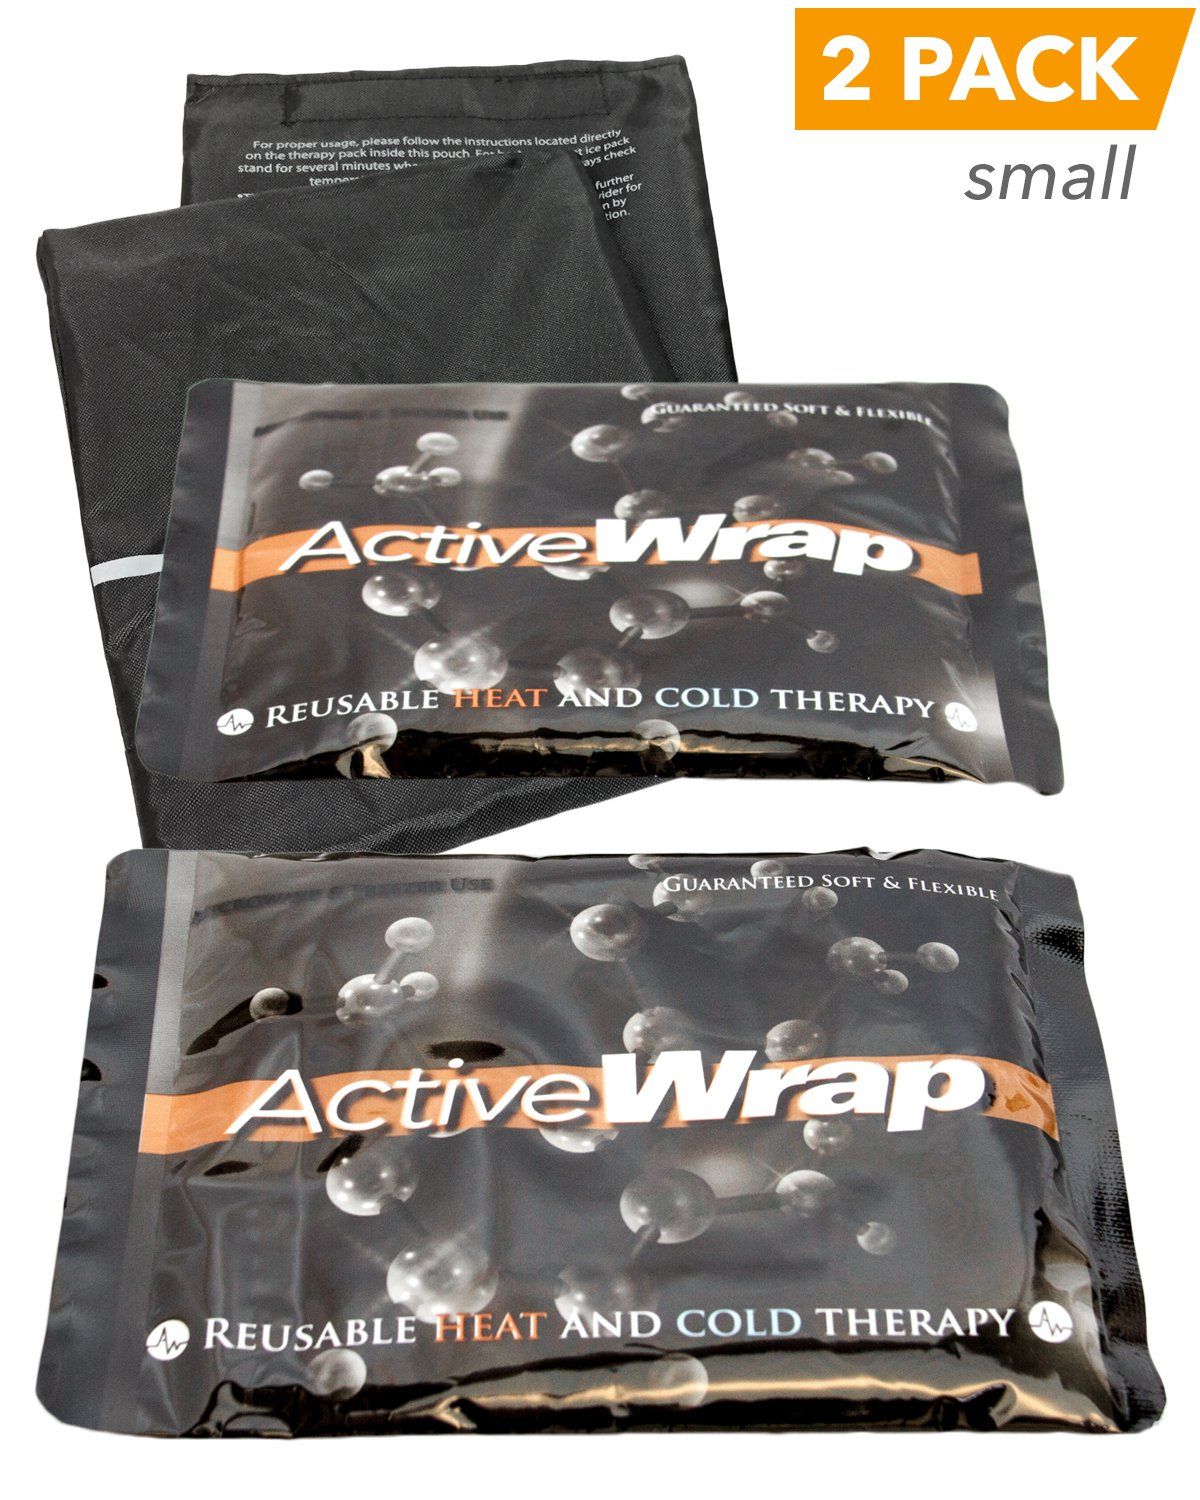 AW ACTIVEWRAP Heat/Ice Packs - Soft and Flexible, Leak-Proof Thermal Design, Compatible with ActiveWrap Foot, Wrist, and Elbow Wraps (BAWP005)